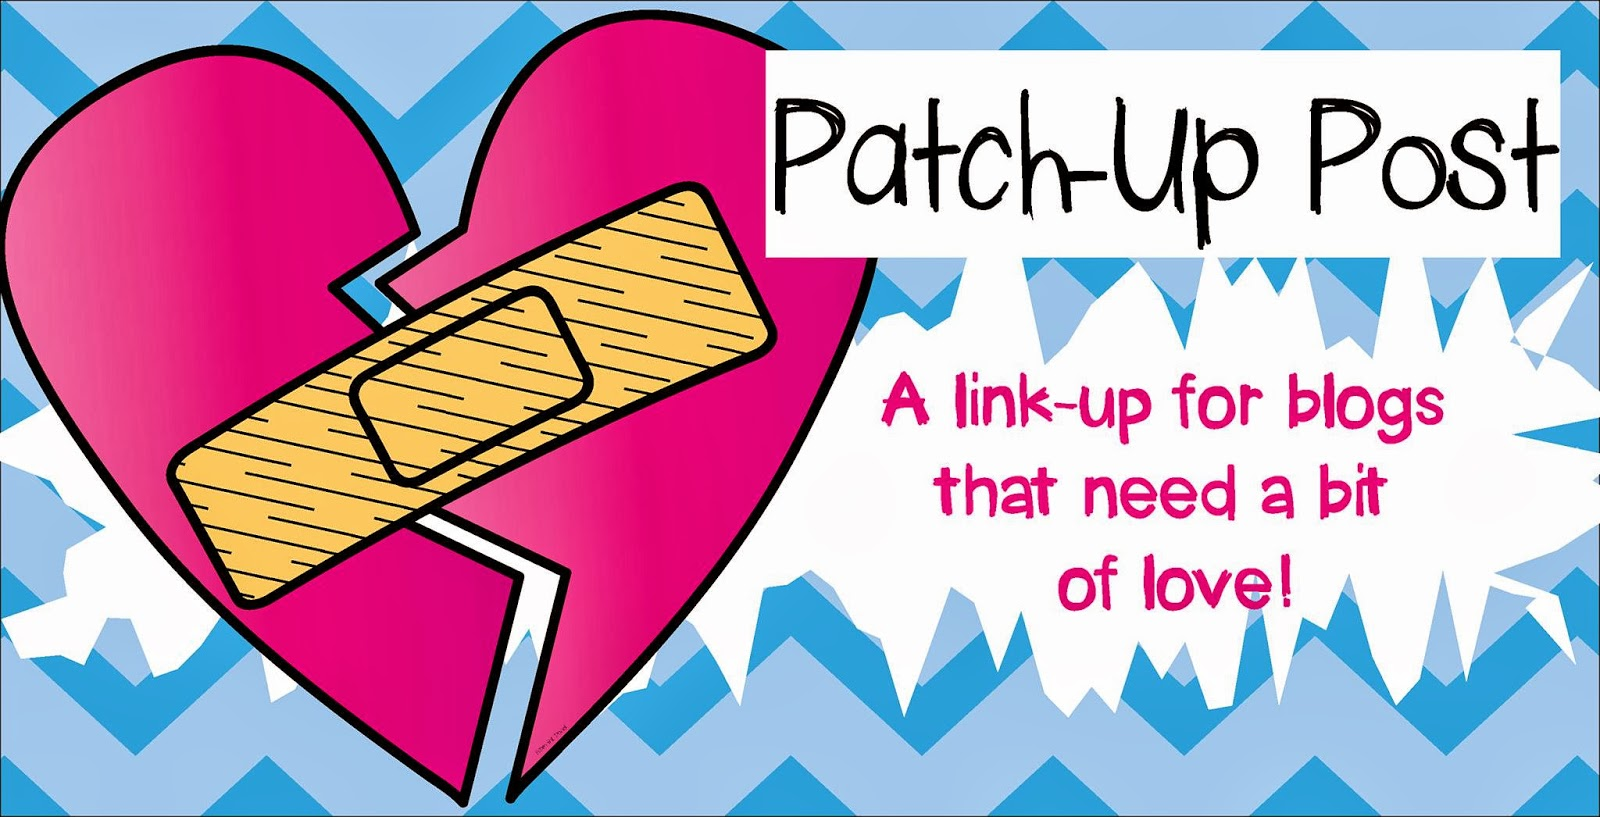 http://teachmoment.blogspot.com.au/2014/01/patch-up-post.html